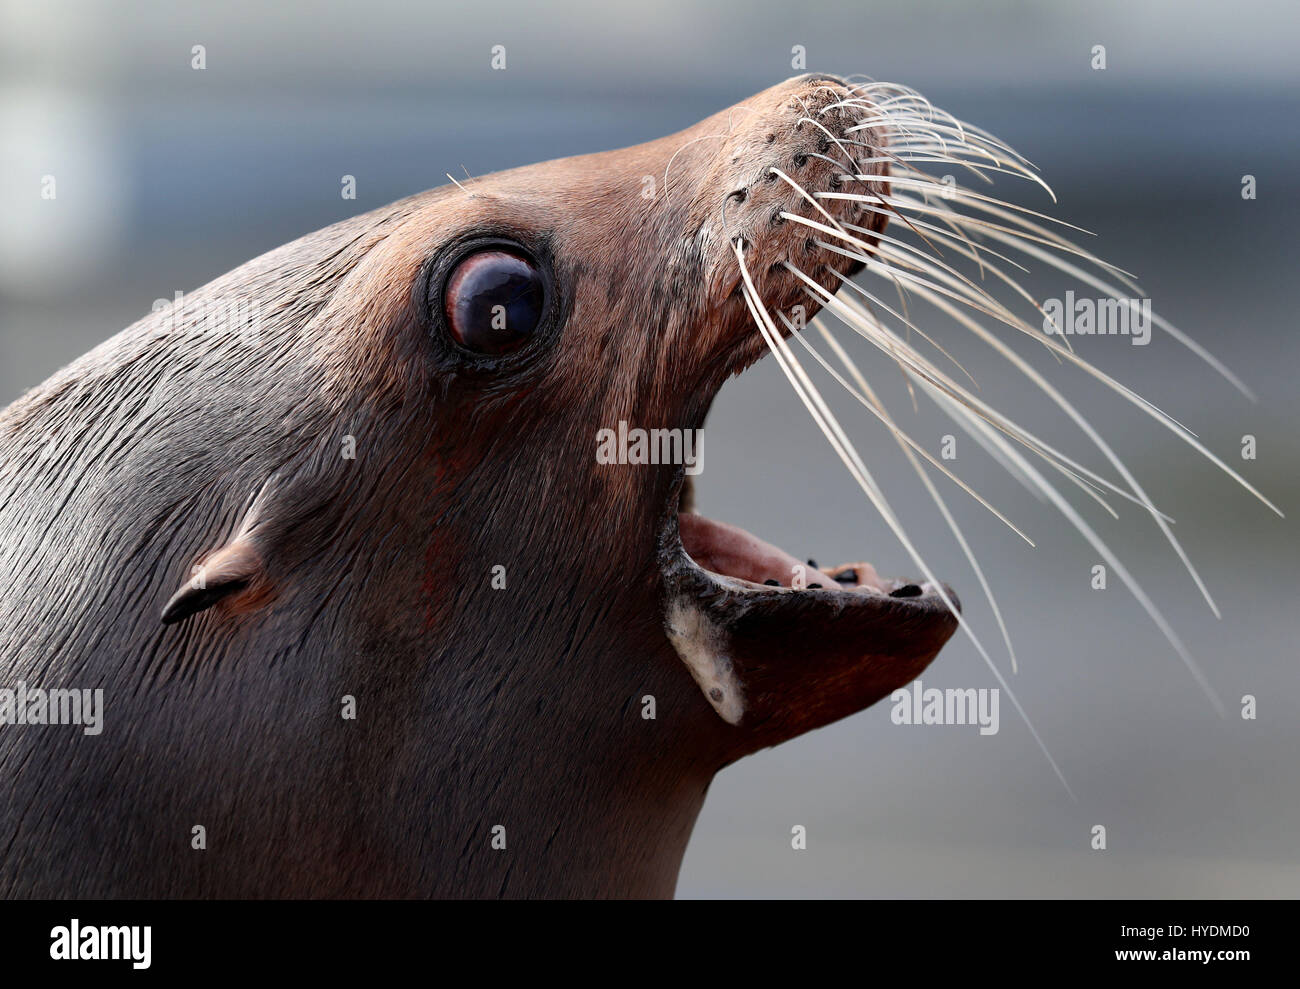 Operation Sealion Photos & Operation Sealion Images - Alamy